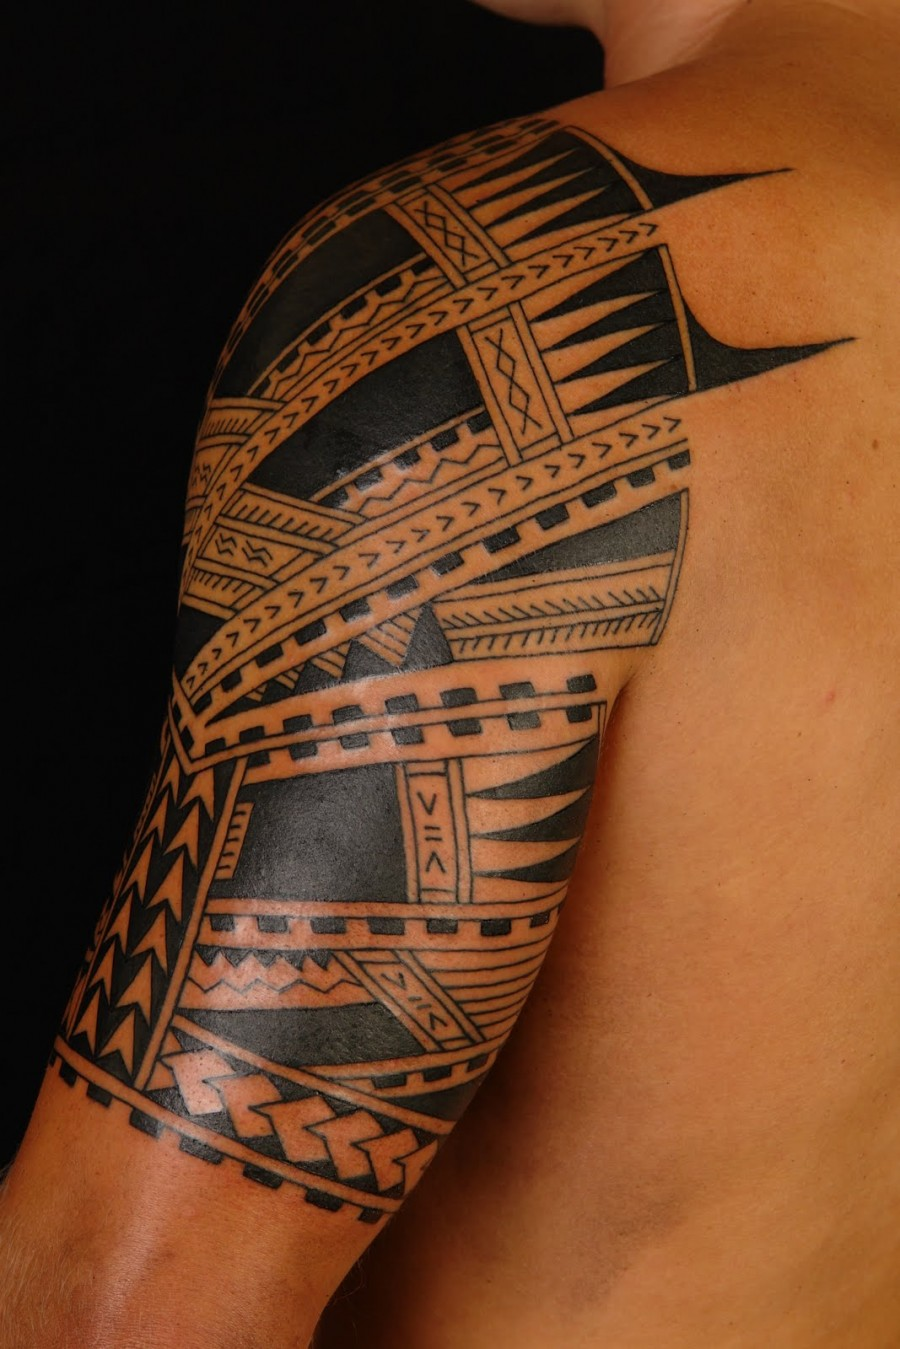 ca333a9ab5 Amazing Shane Tattoo Style on upper arm - | TattooMagz › Tattoo ...